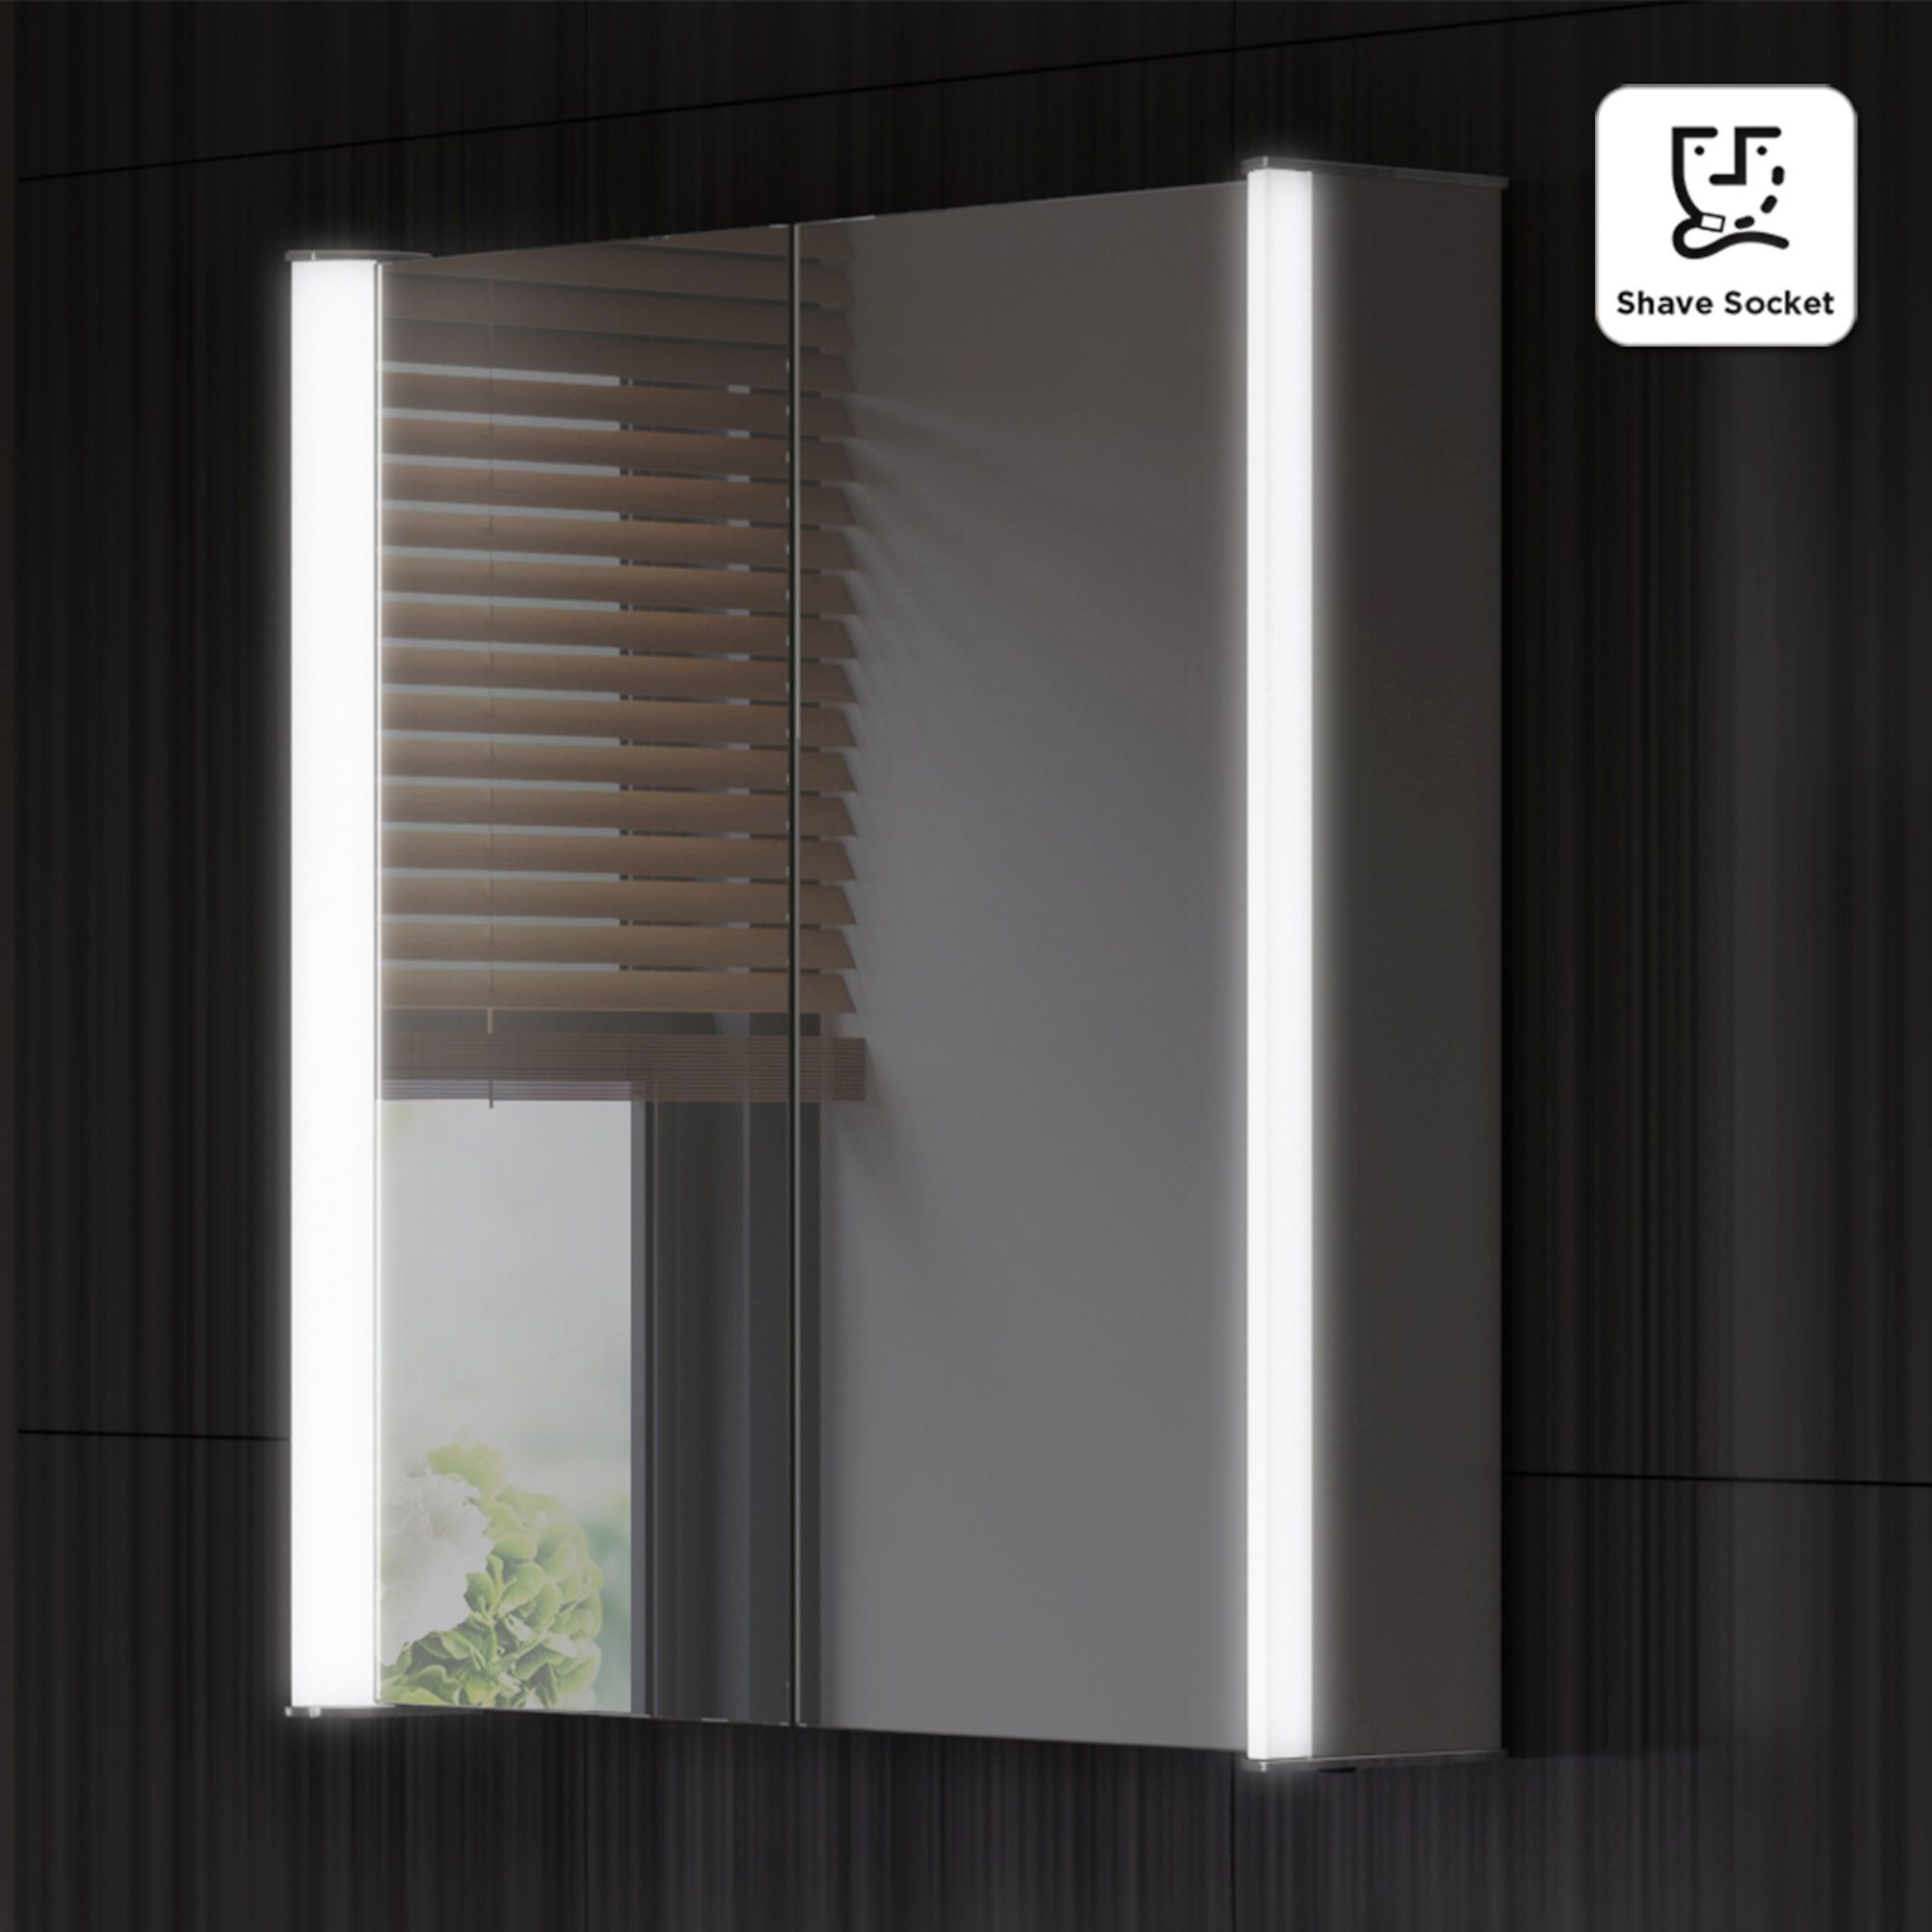 600x650mm Bloom Illuminated Led Mirror Cabinet Shaver Socket Soak Com With Images Mirror Cabinets Bathroom Mirror Cabinet Led Mirror Bathroom